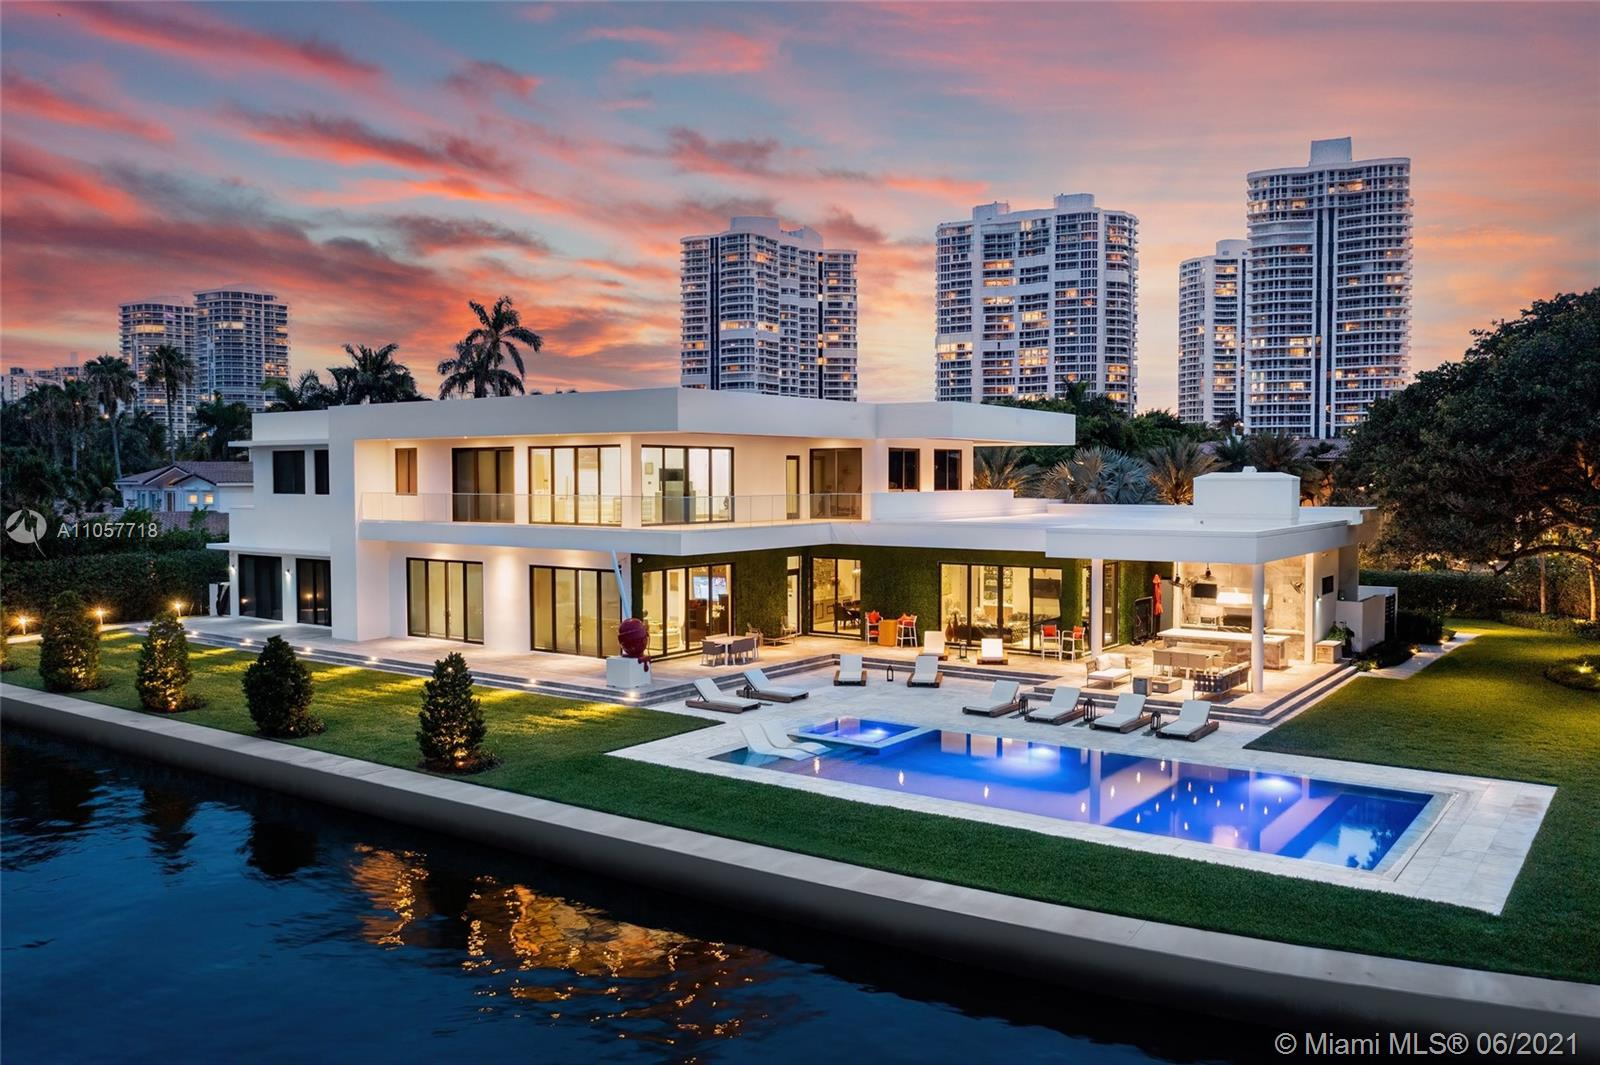 This modern tropical oasis is situated on an expansive 36,136 SF lot, one of the largest in Golden Beach. On a wide canal with breathtaking water views, this estate is the perfect balance of modern architecture, privacy & the ultimate family living experience. Boasting 14,639 SF of open concept luxurious living, 6BD/7+3BA, 3 car garage & an expansive driveway. Complete w/ private gates, floor-to-ceiling windows, heated saltwater pool, summer kitchen, custom high-end finishes, gourmet kitchen, wine cellar, elevator, gym, movie theatre, soaring double height ceilings, principal wing w/a boutique style walk-in closet. The serene outdoors face the tranquil 280' of waterfront & include a private dock & jet ski lift. This custom home is impeccably maintained with no expense spared.